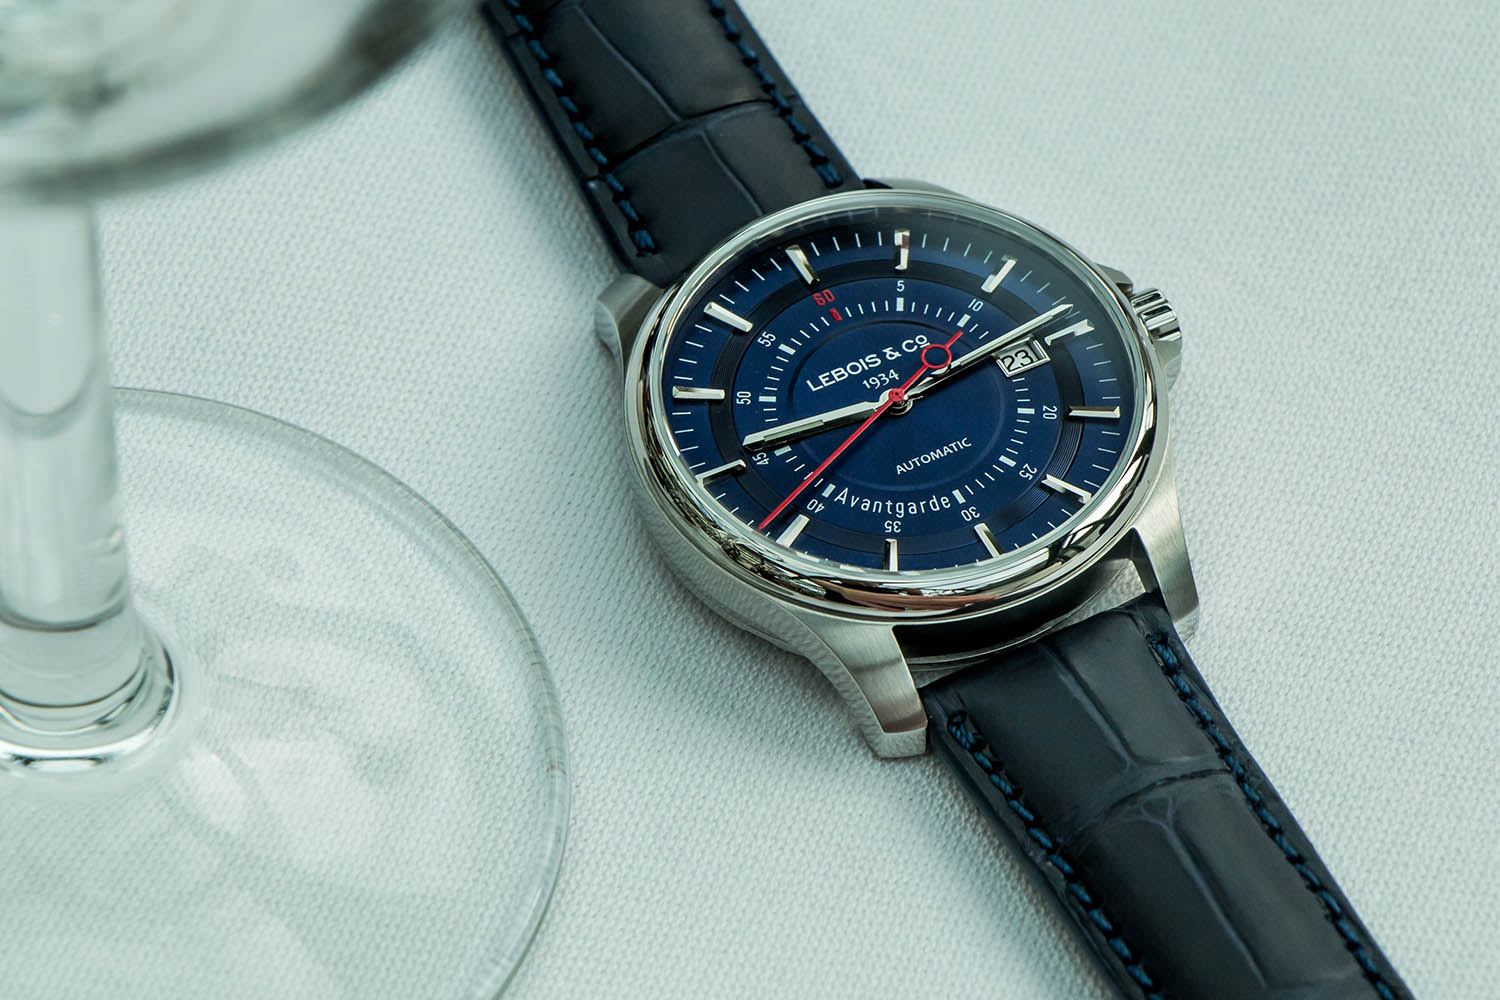 Lebois and Co Avantgarde Date - The Re-launch Edition blue - 4